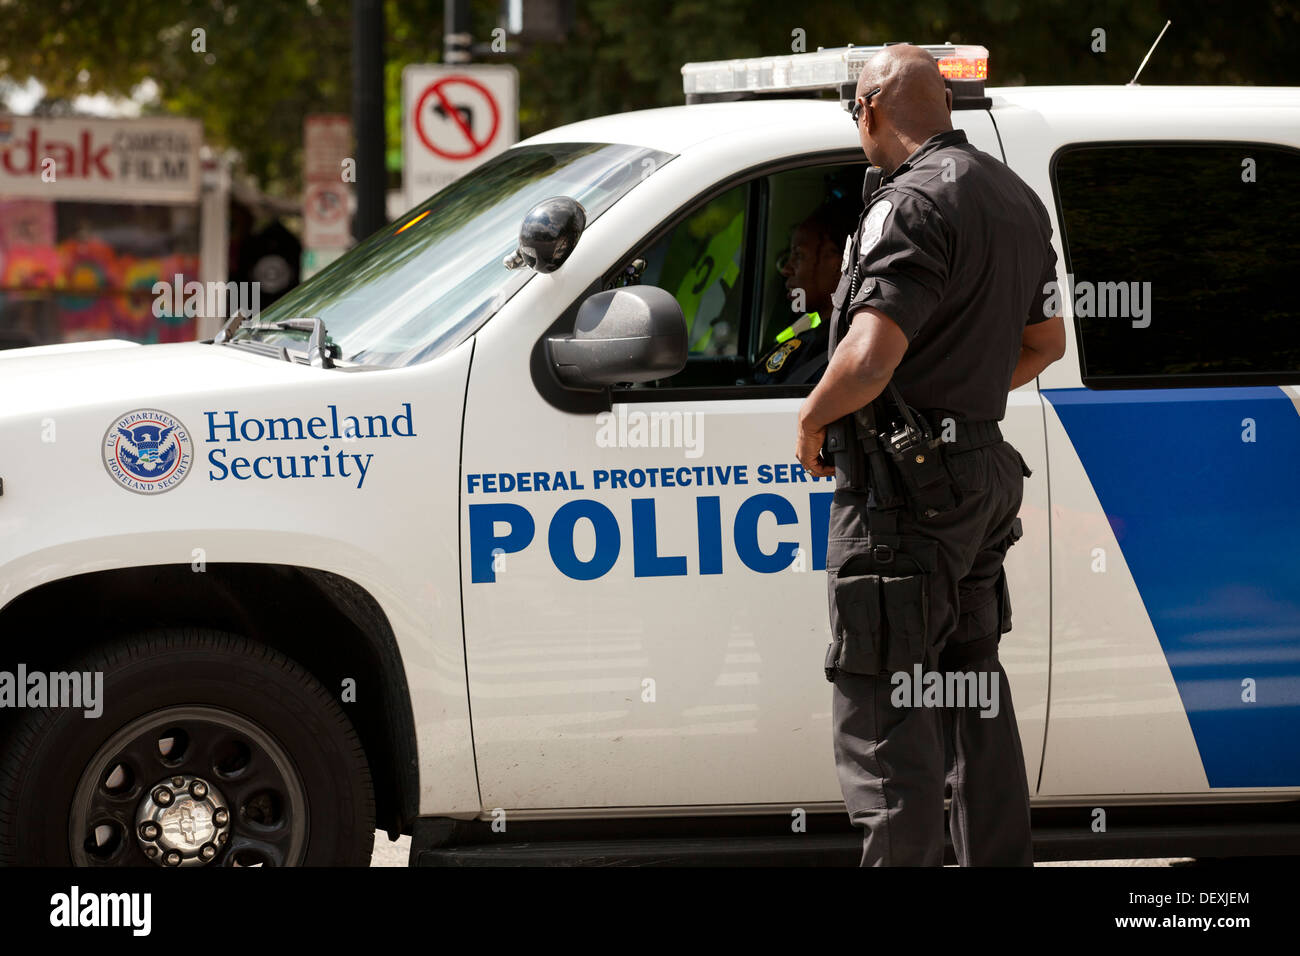 Homeland Security Police officer standing next to cruiser - Washington, DC Stock Photo